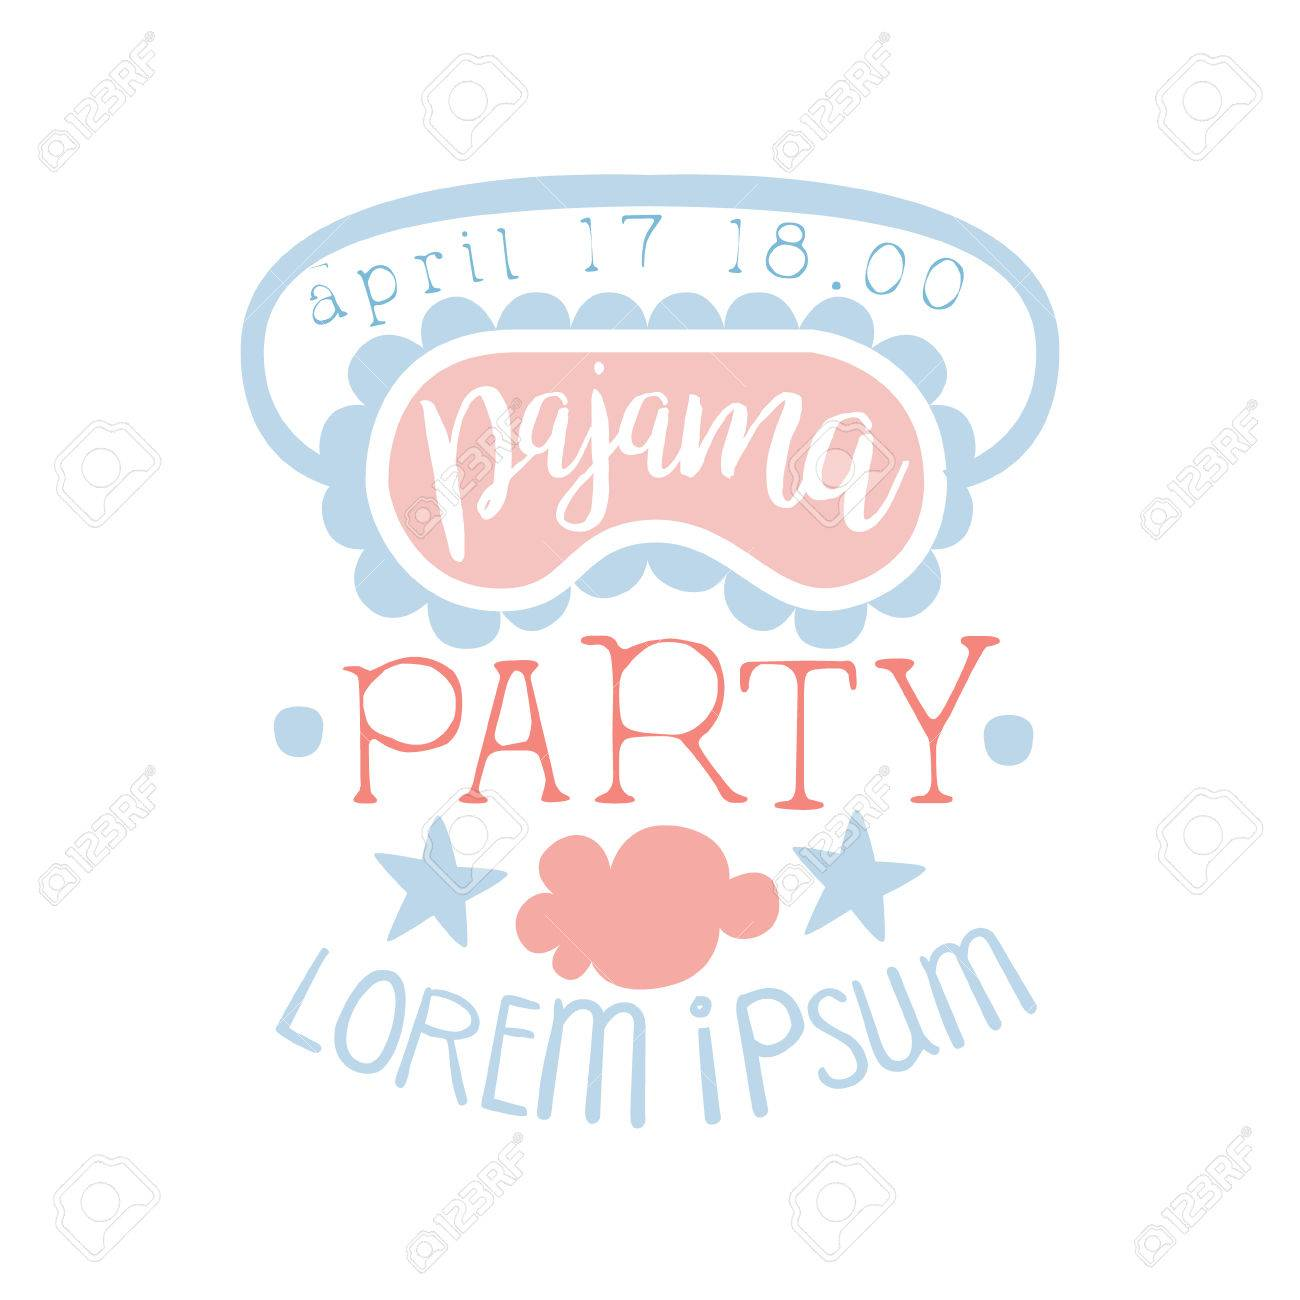 Girly Pajama Party Invitation Card Template With Sleeping Mask ...